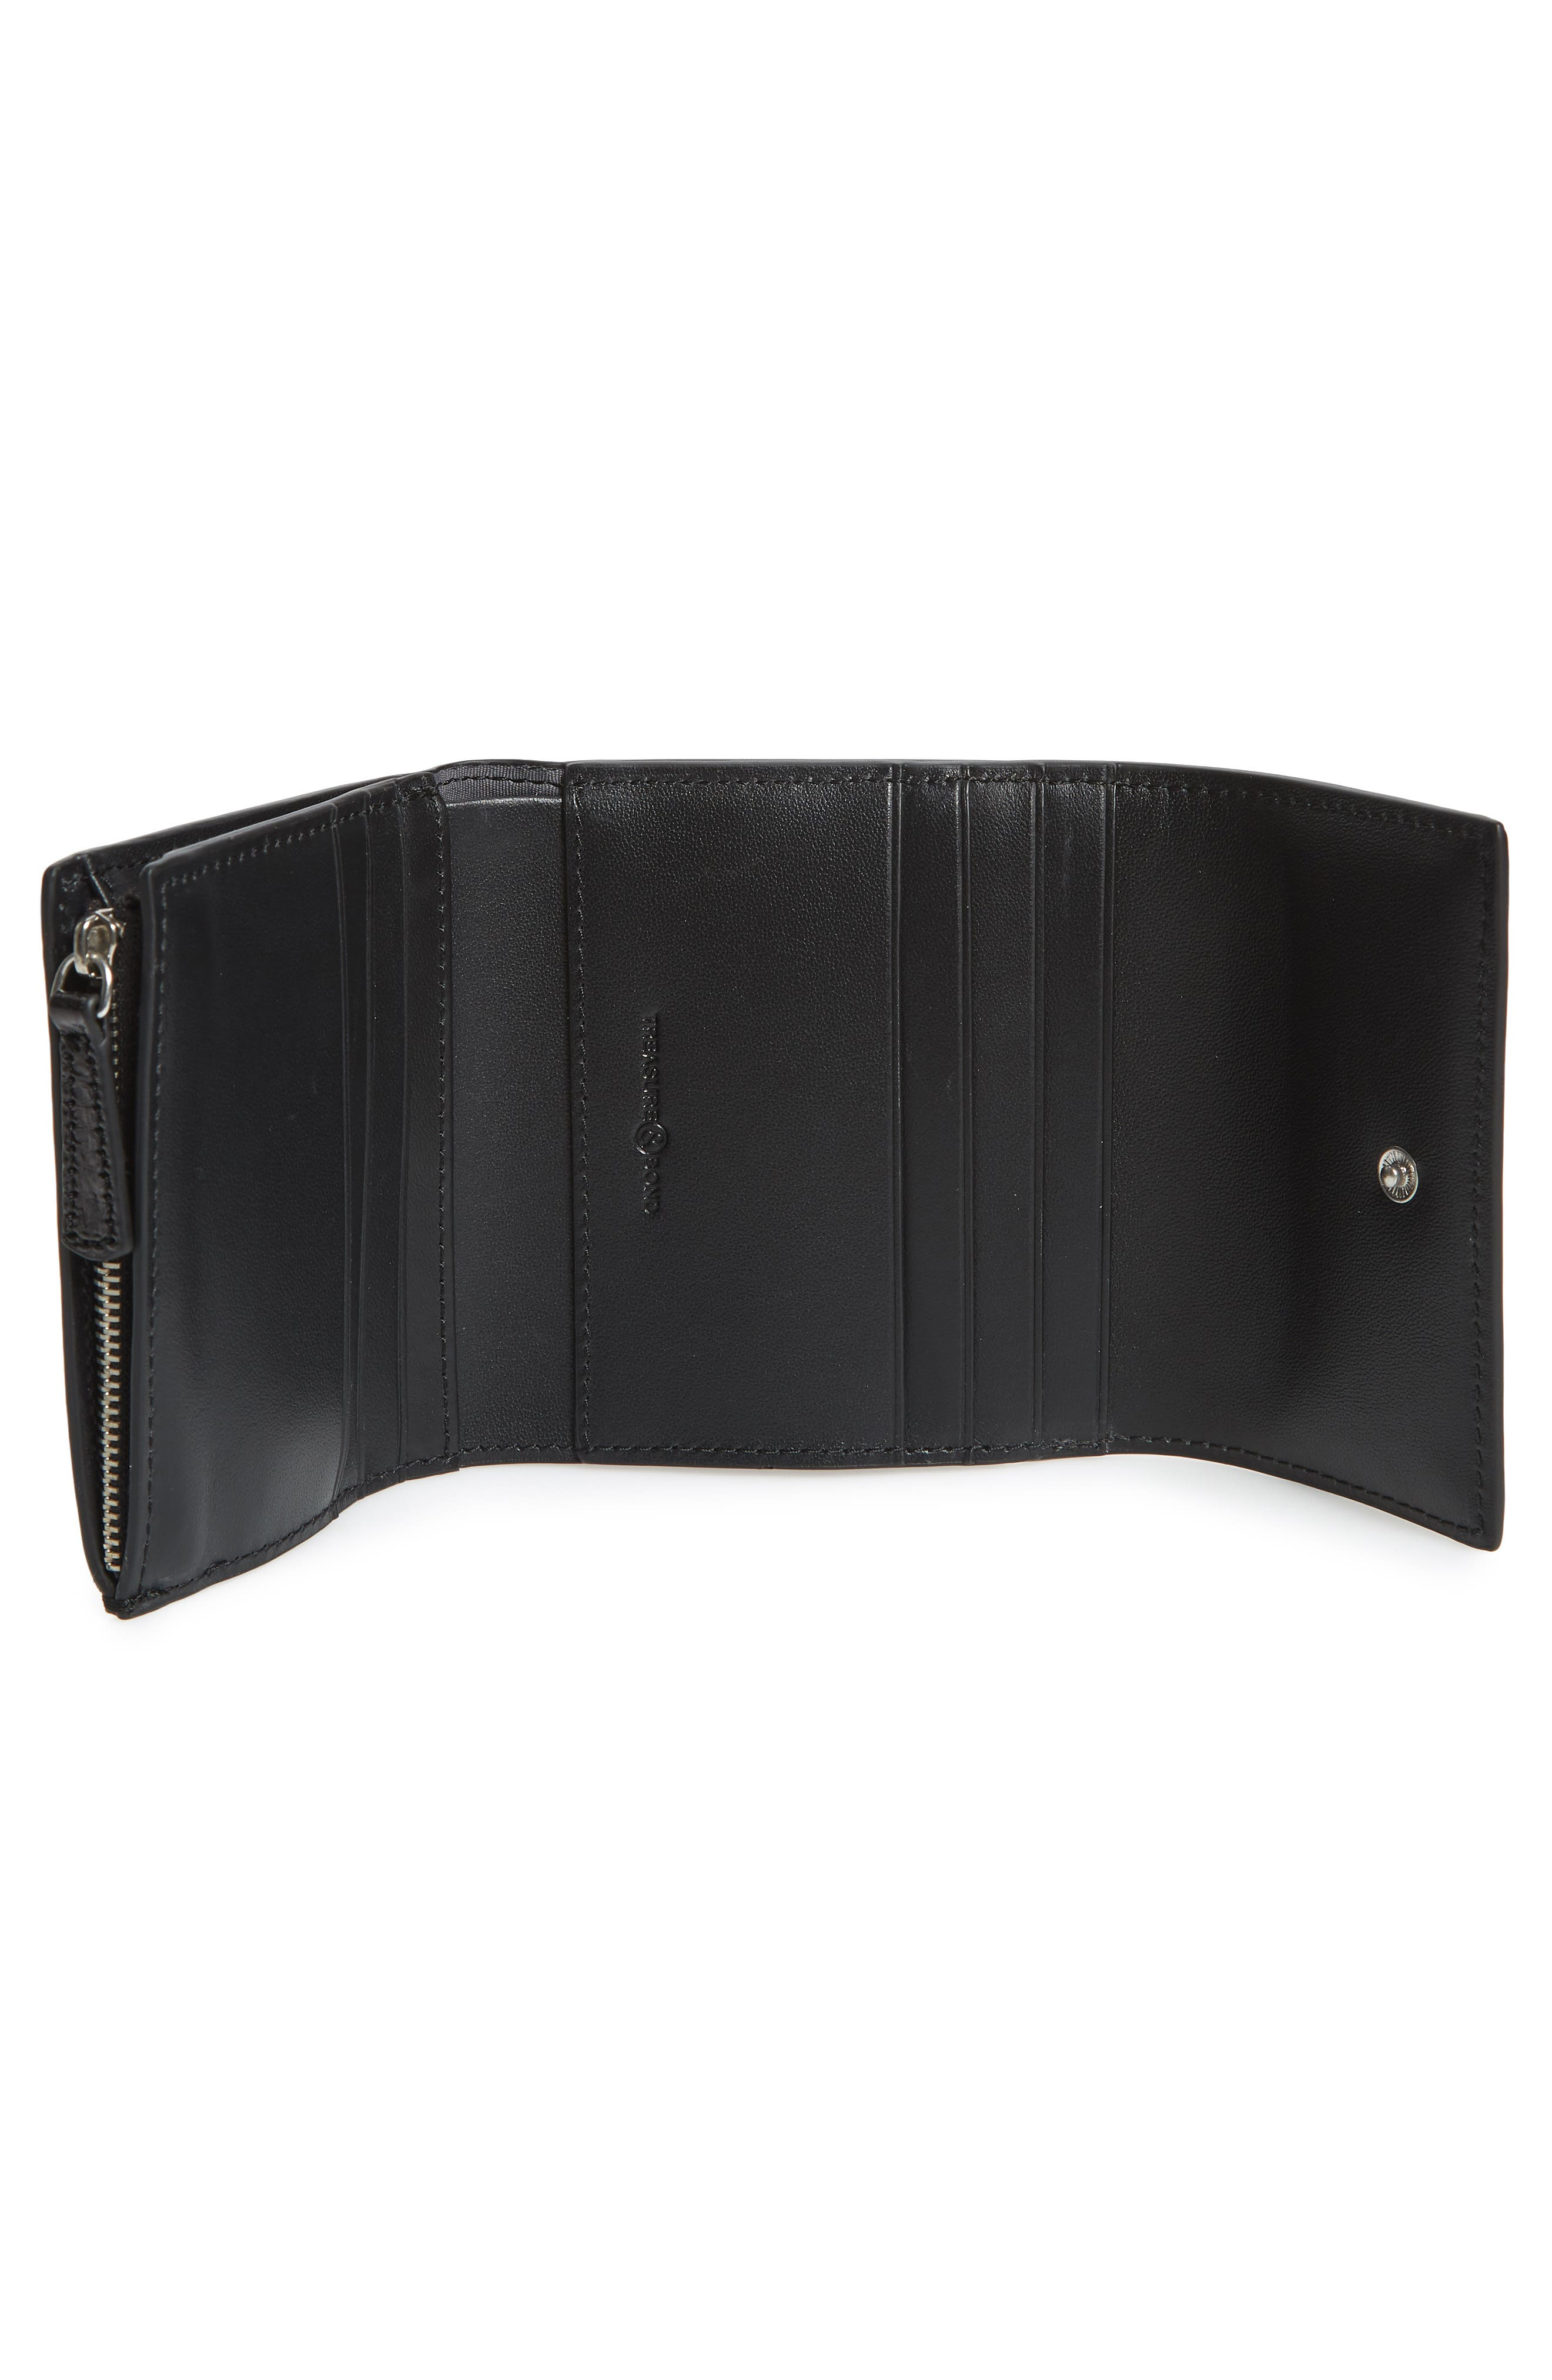 Tracy Leather Trifold Wallet,                             Alternate thumbnail 2, color,                             BLACK